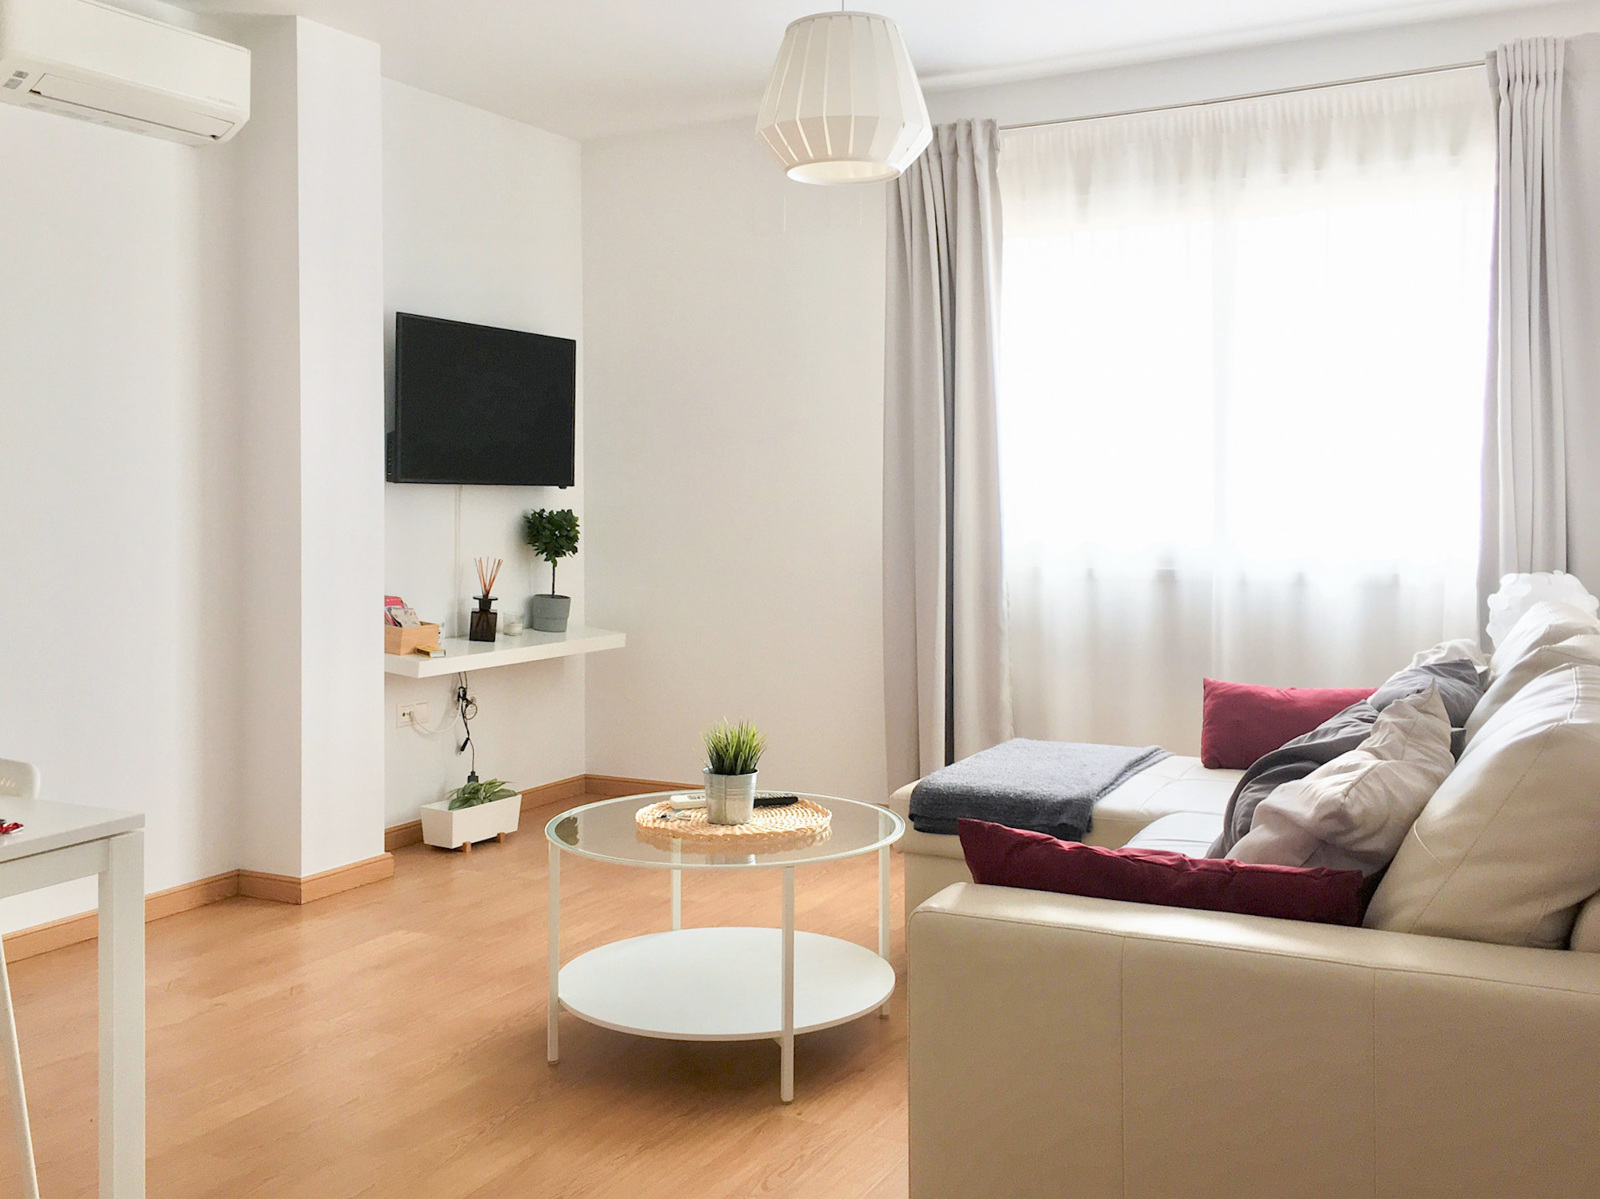 Holiday rental apartaments in Málaga. Apartments in the city center and El Palo beach. The best location in Málaga. - El Palo 1